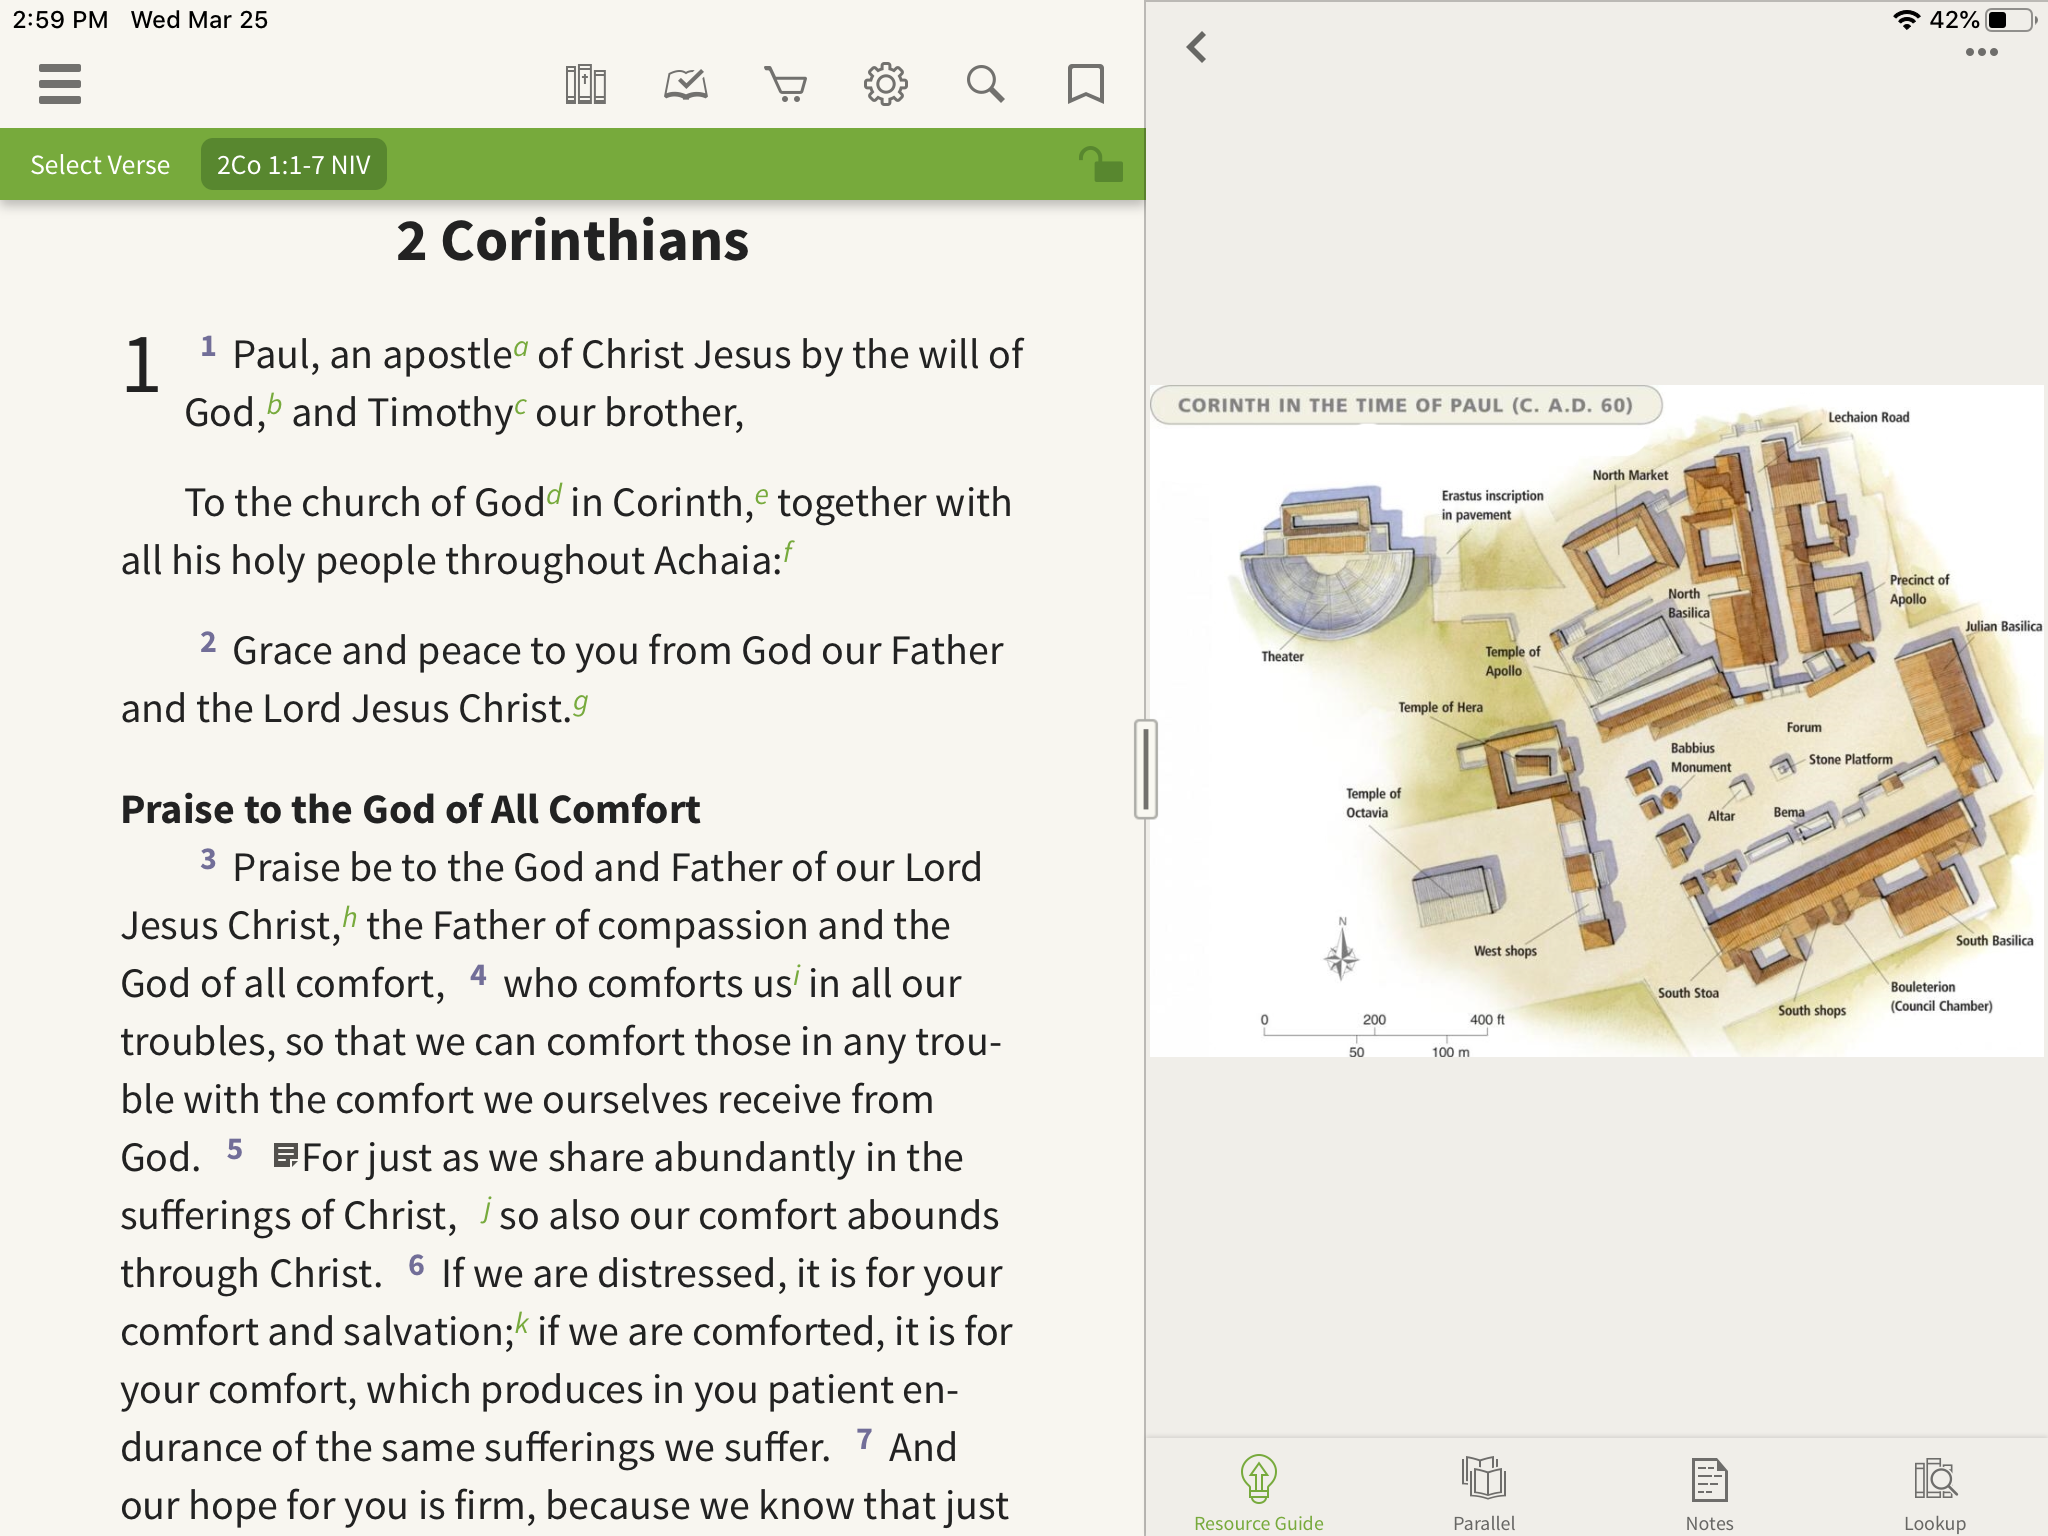 Images of Corinth in the Resource Guide